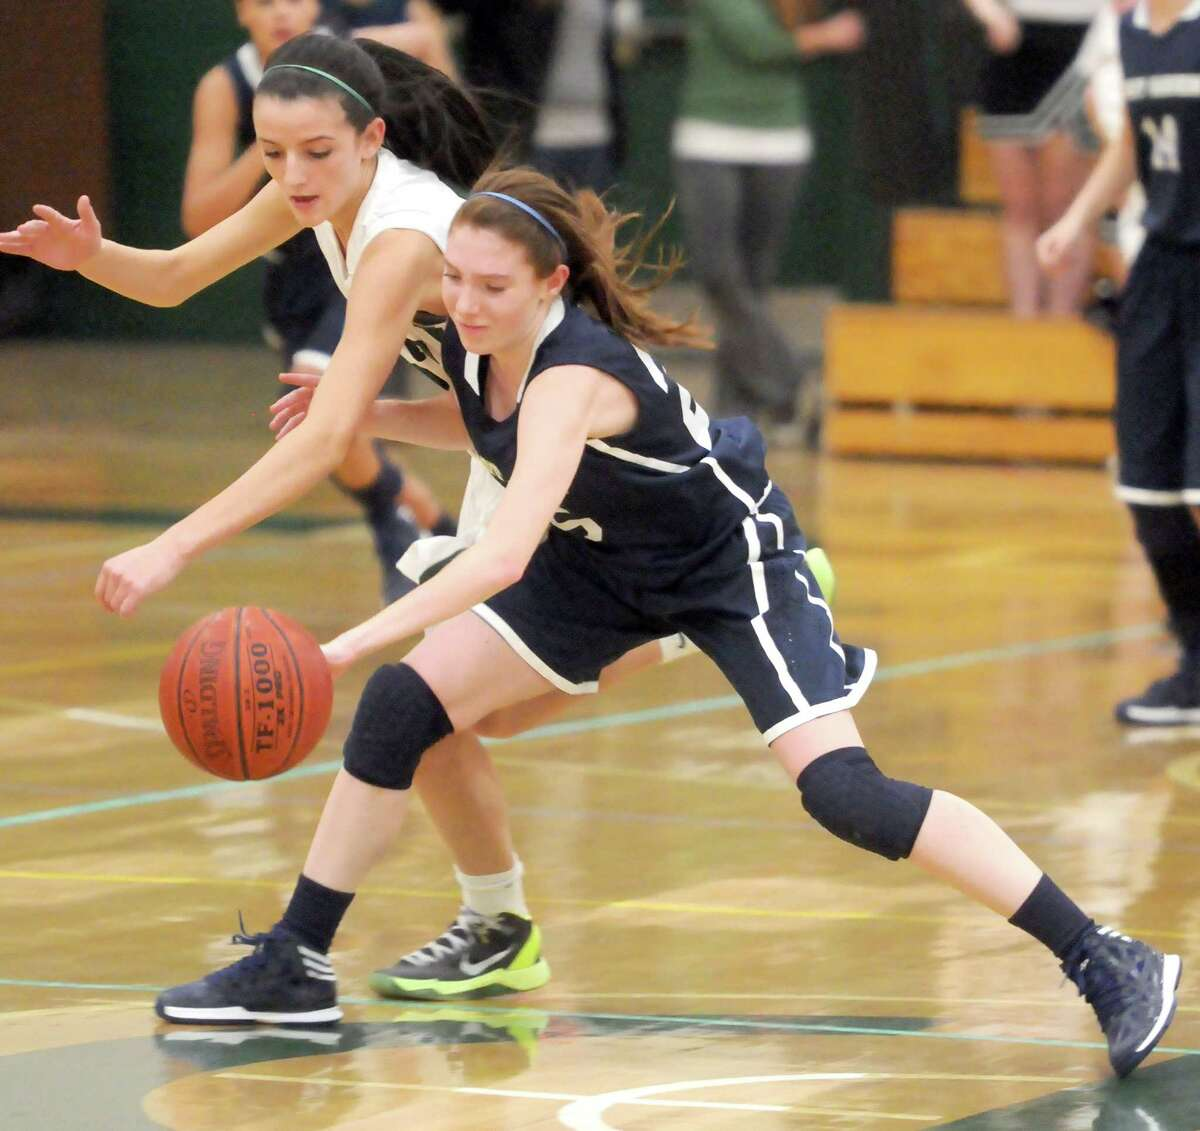 (Mara Lavitt ?' New Haven Register) December 20, 2013 Guilford East Haven at Guilford girls basketball: Guilford's Meredith Shank, left, and East Haven's Jessica Benevento.